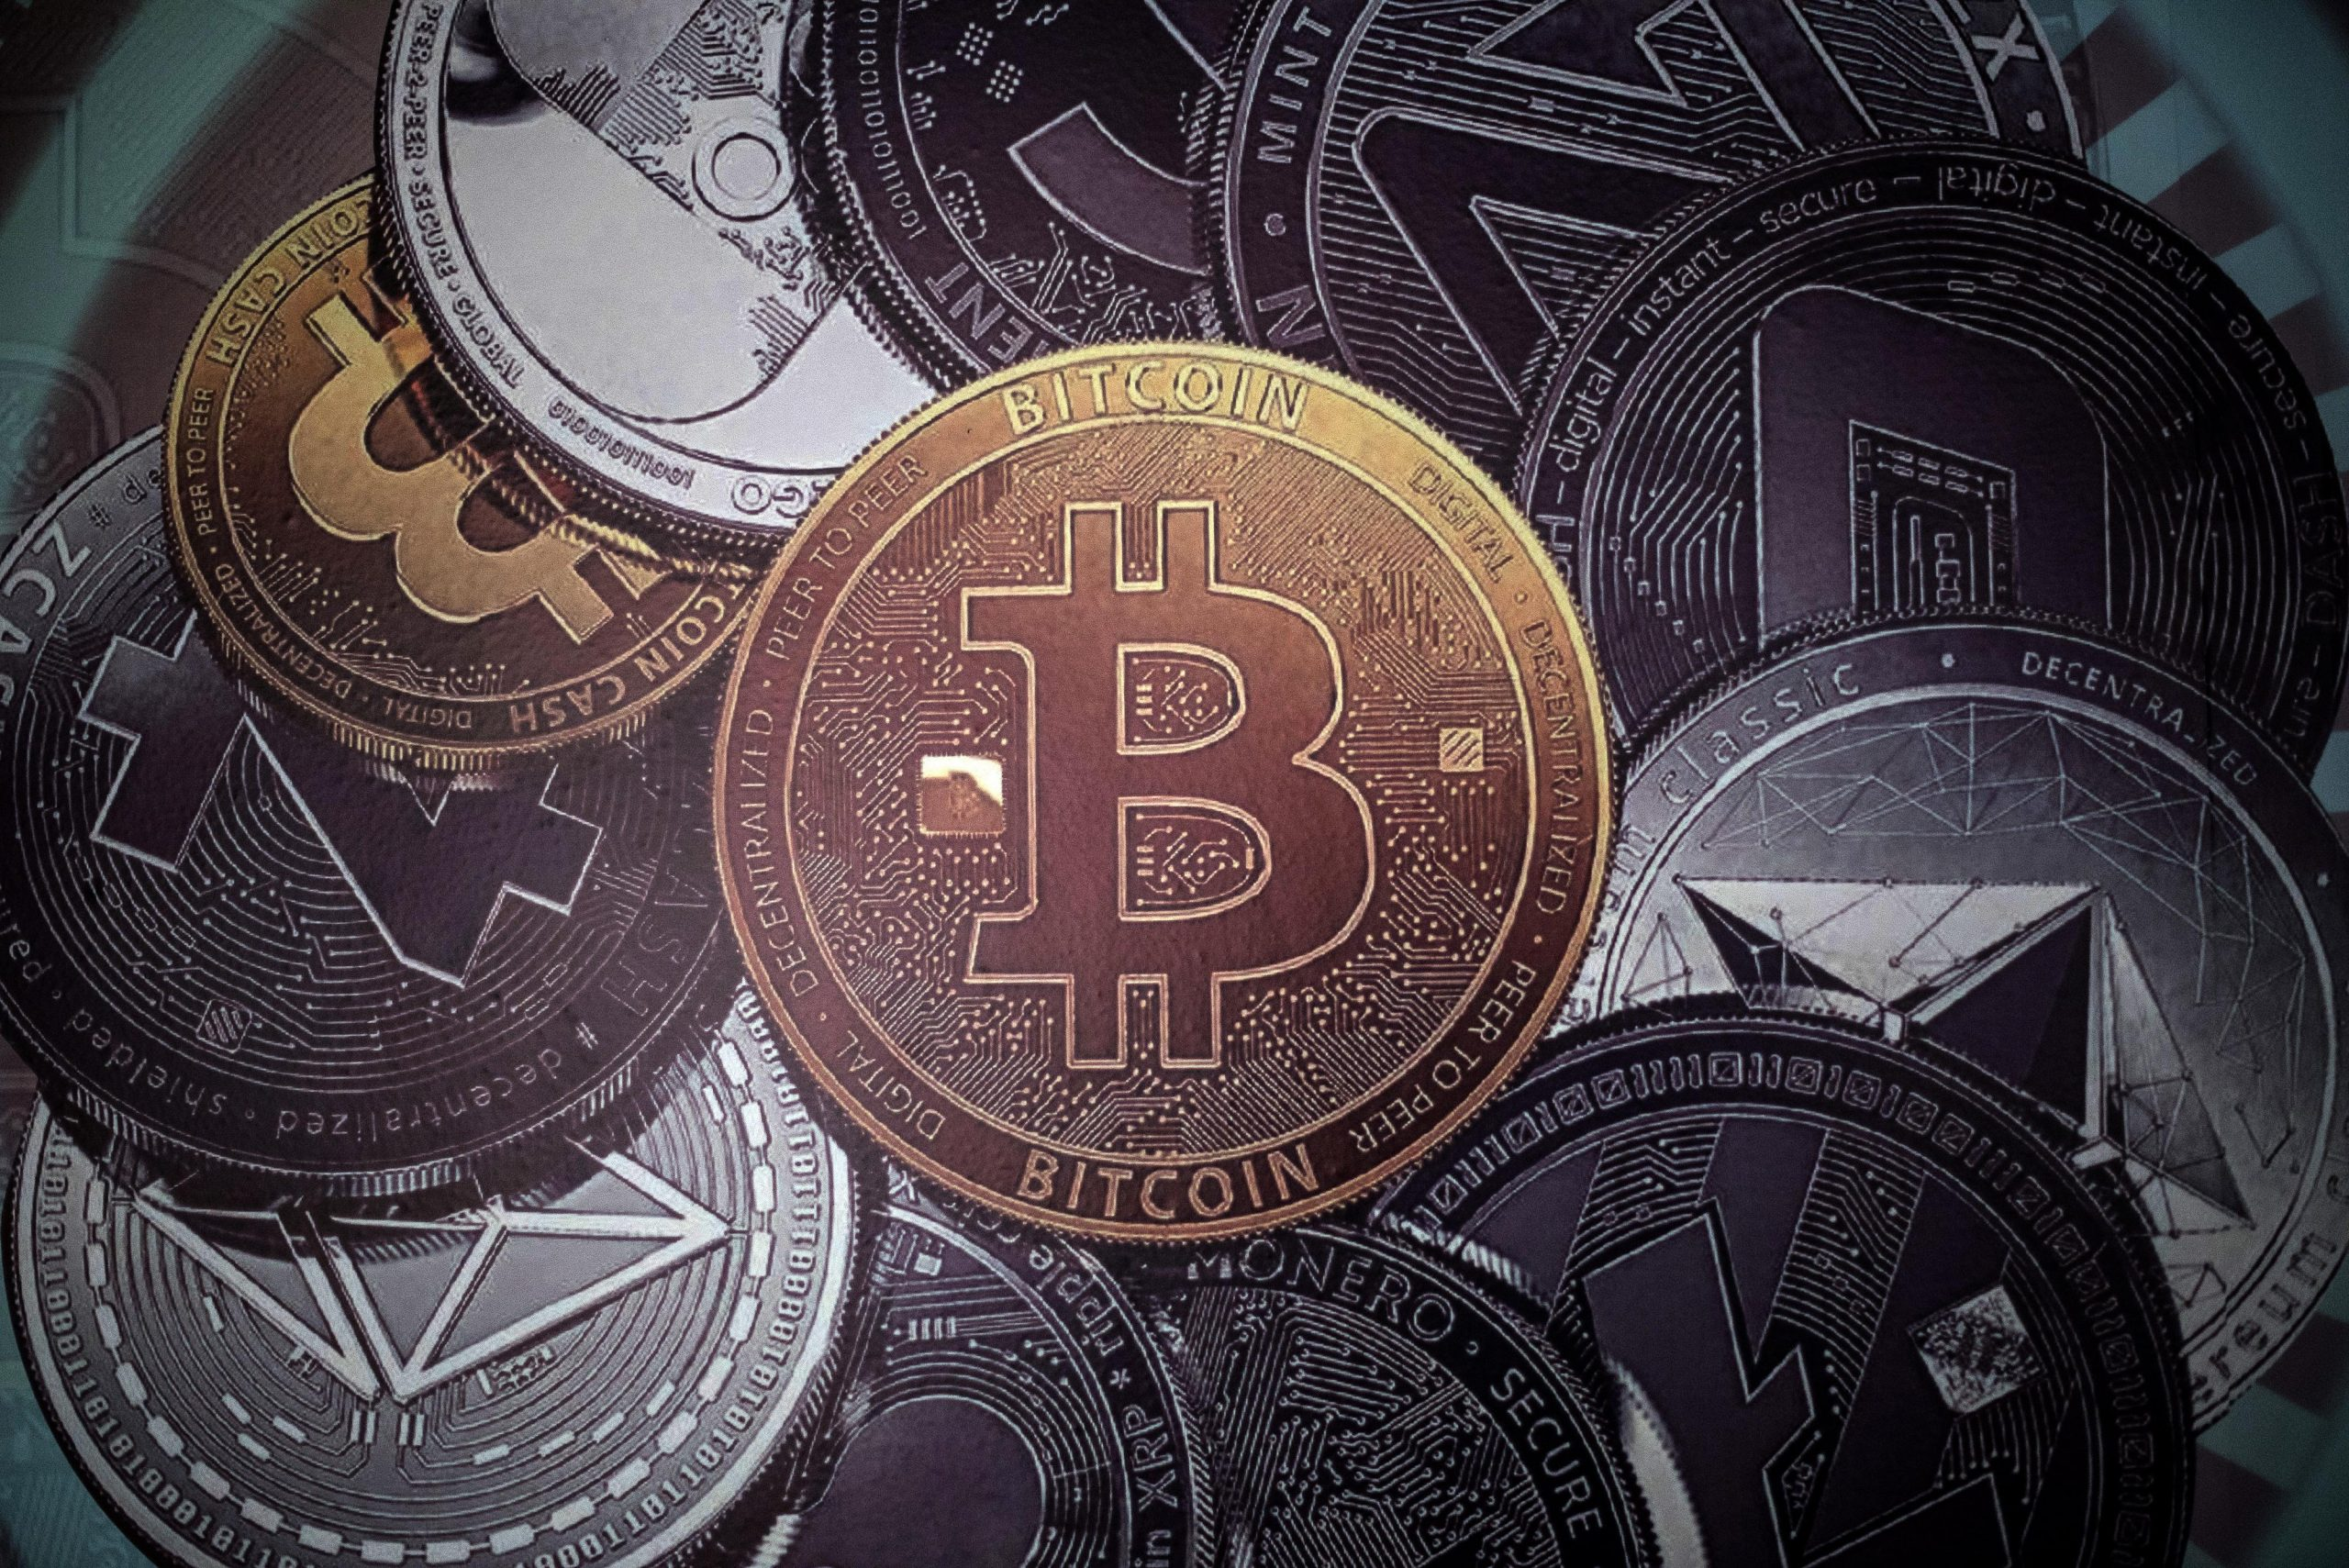 Bitcoin and digital assets